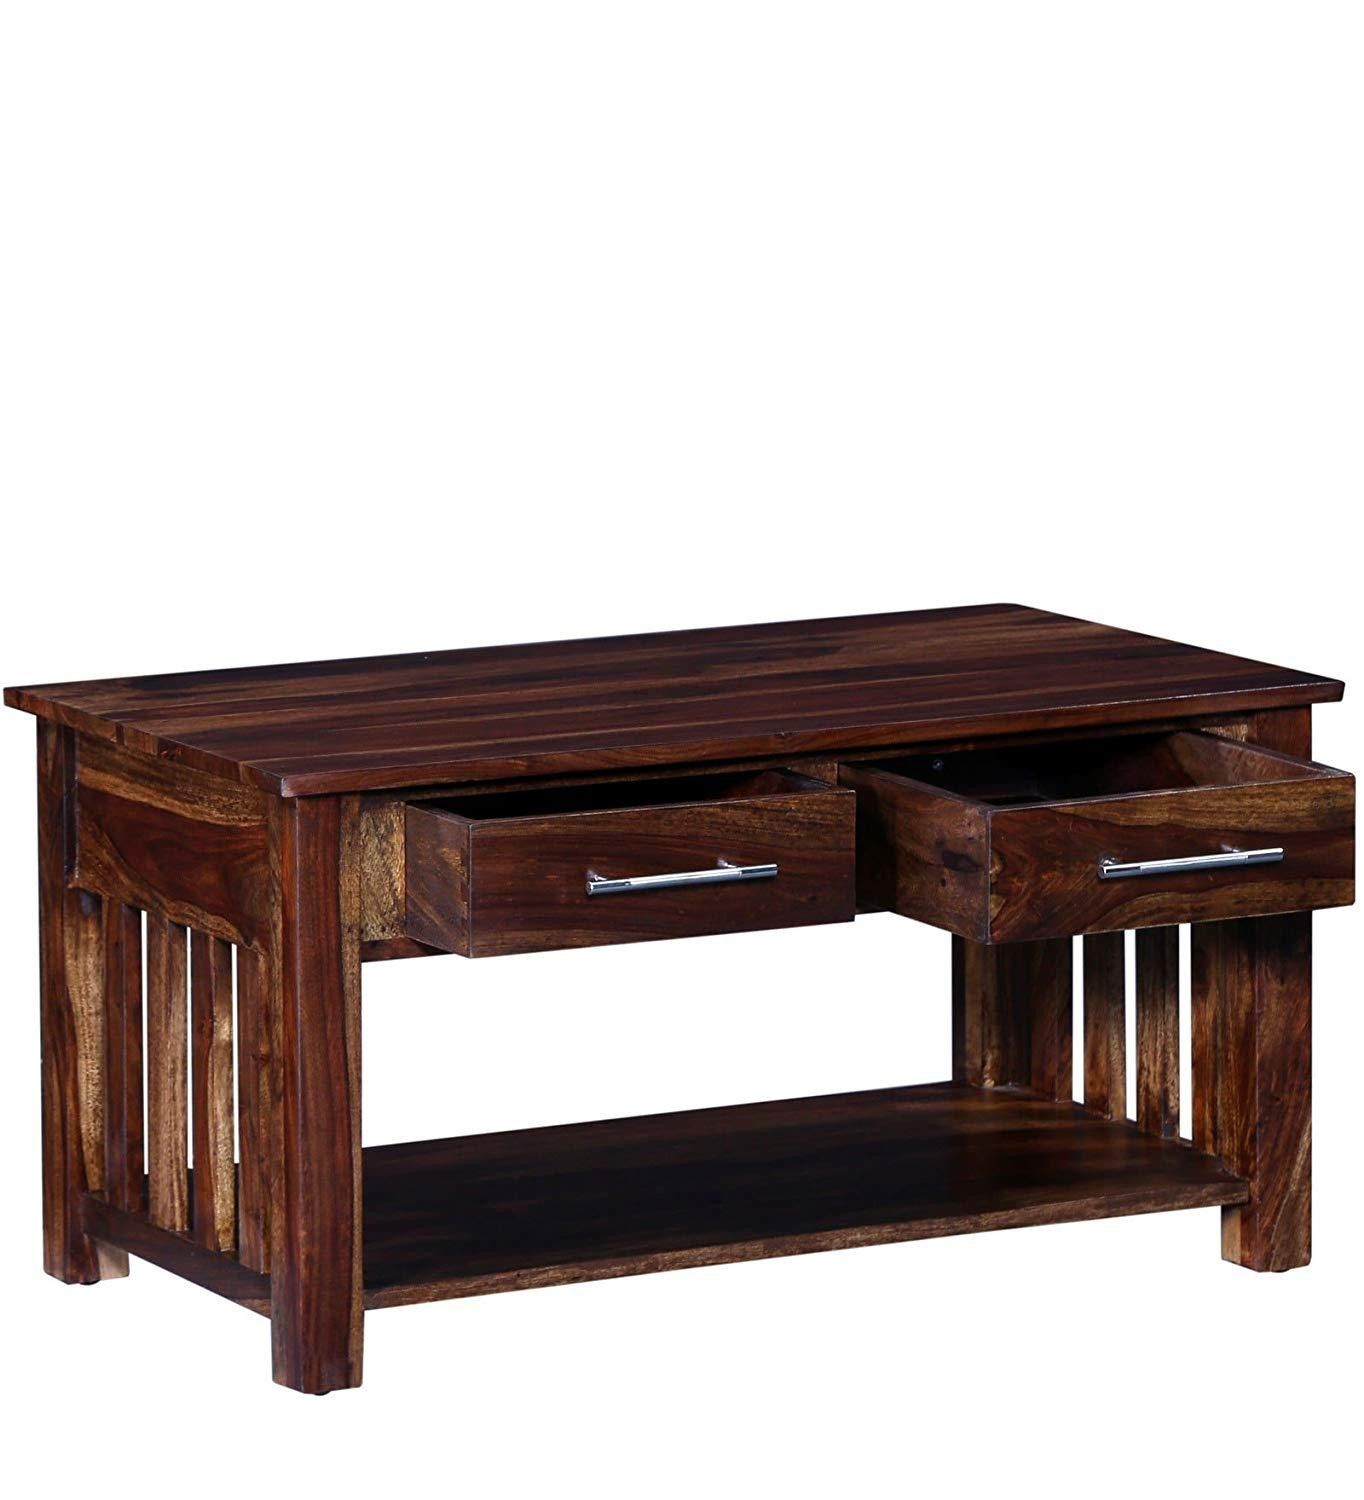 20 Interesting Honey Oak Coffee Table See This